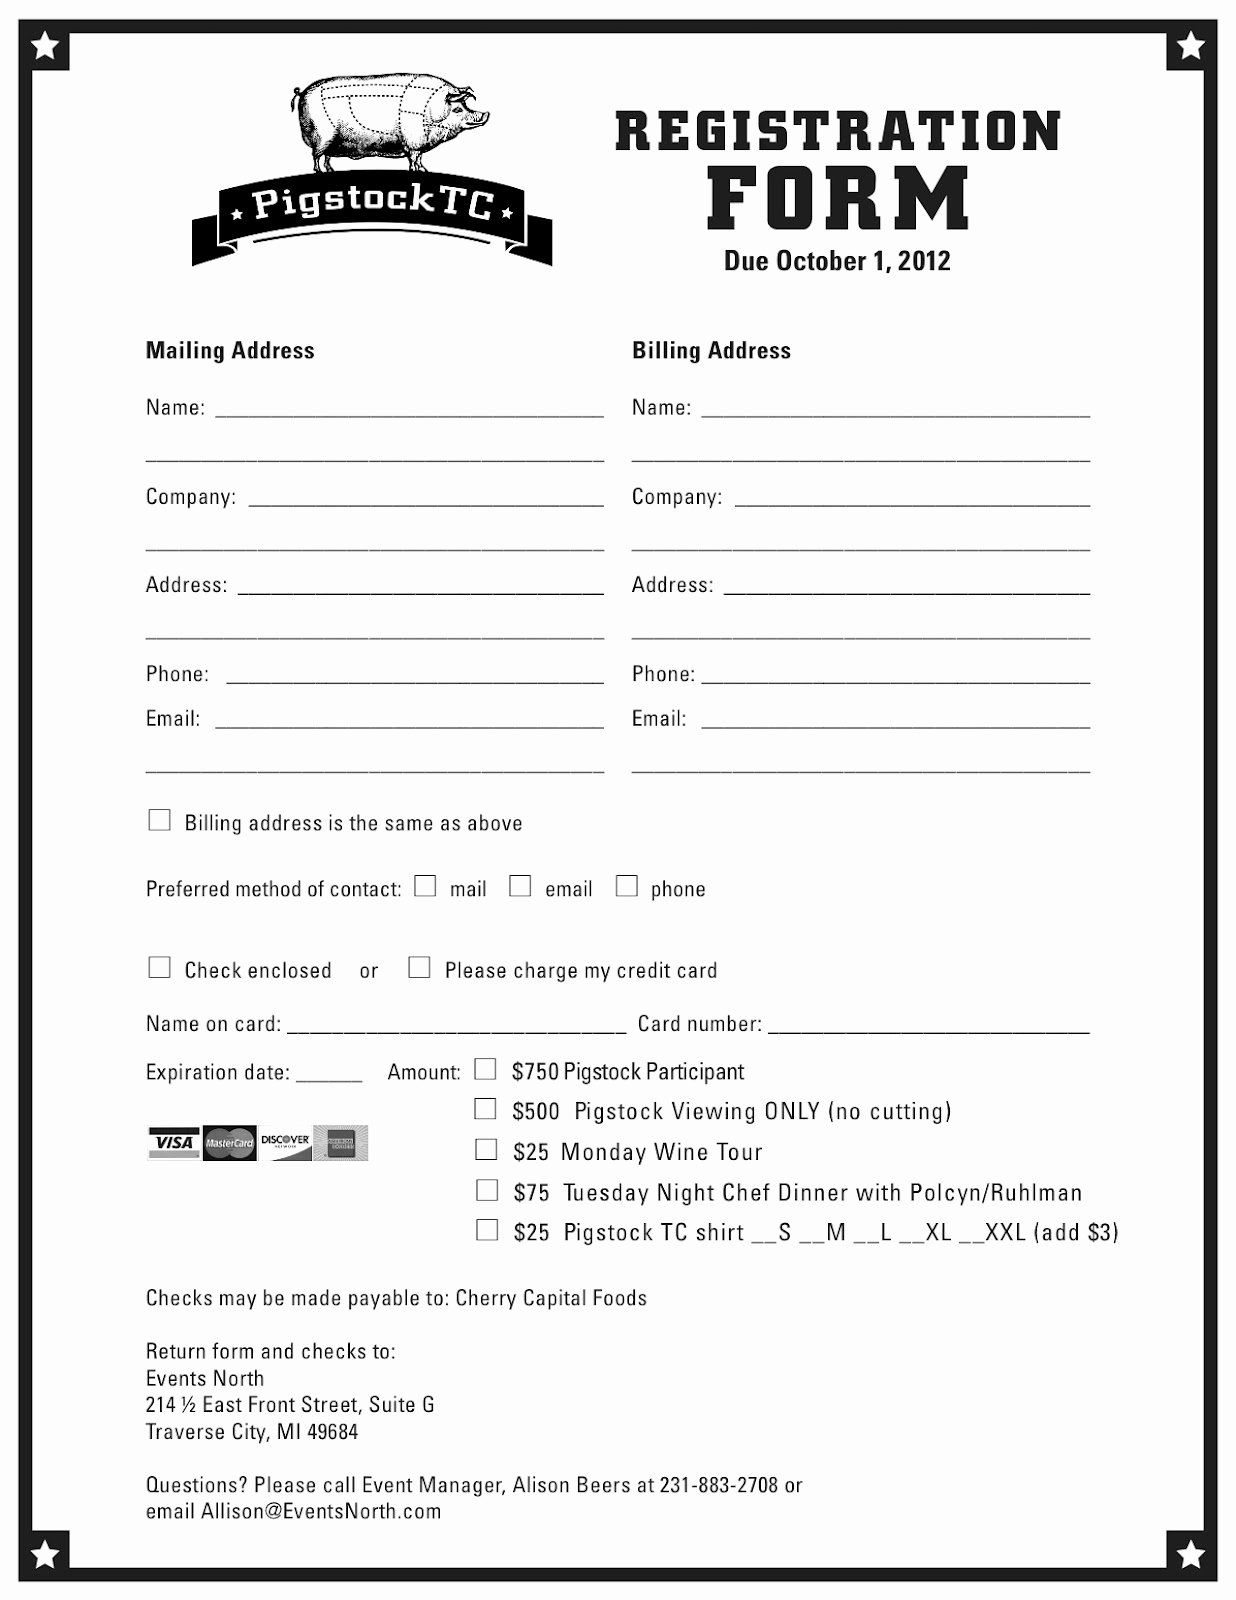 Printable Registration form Template Beautiful Pigstocktc